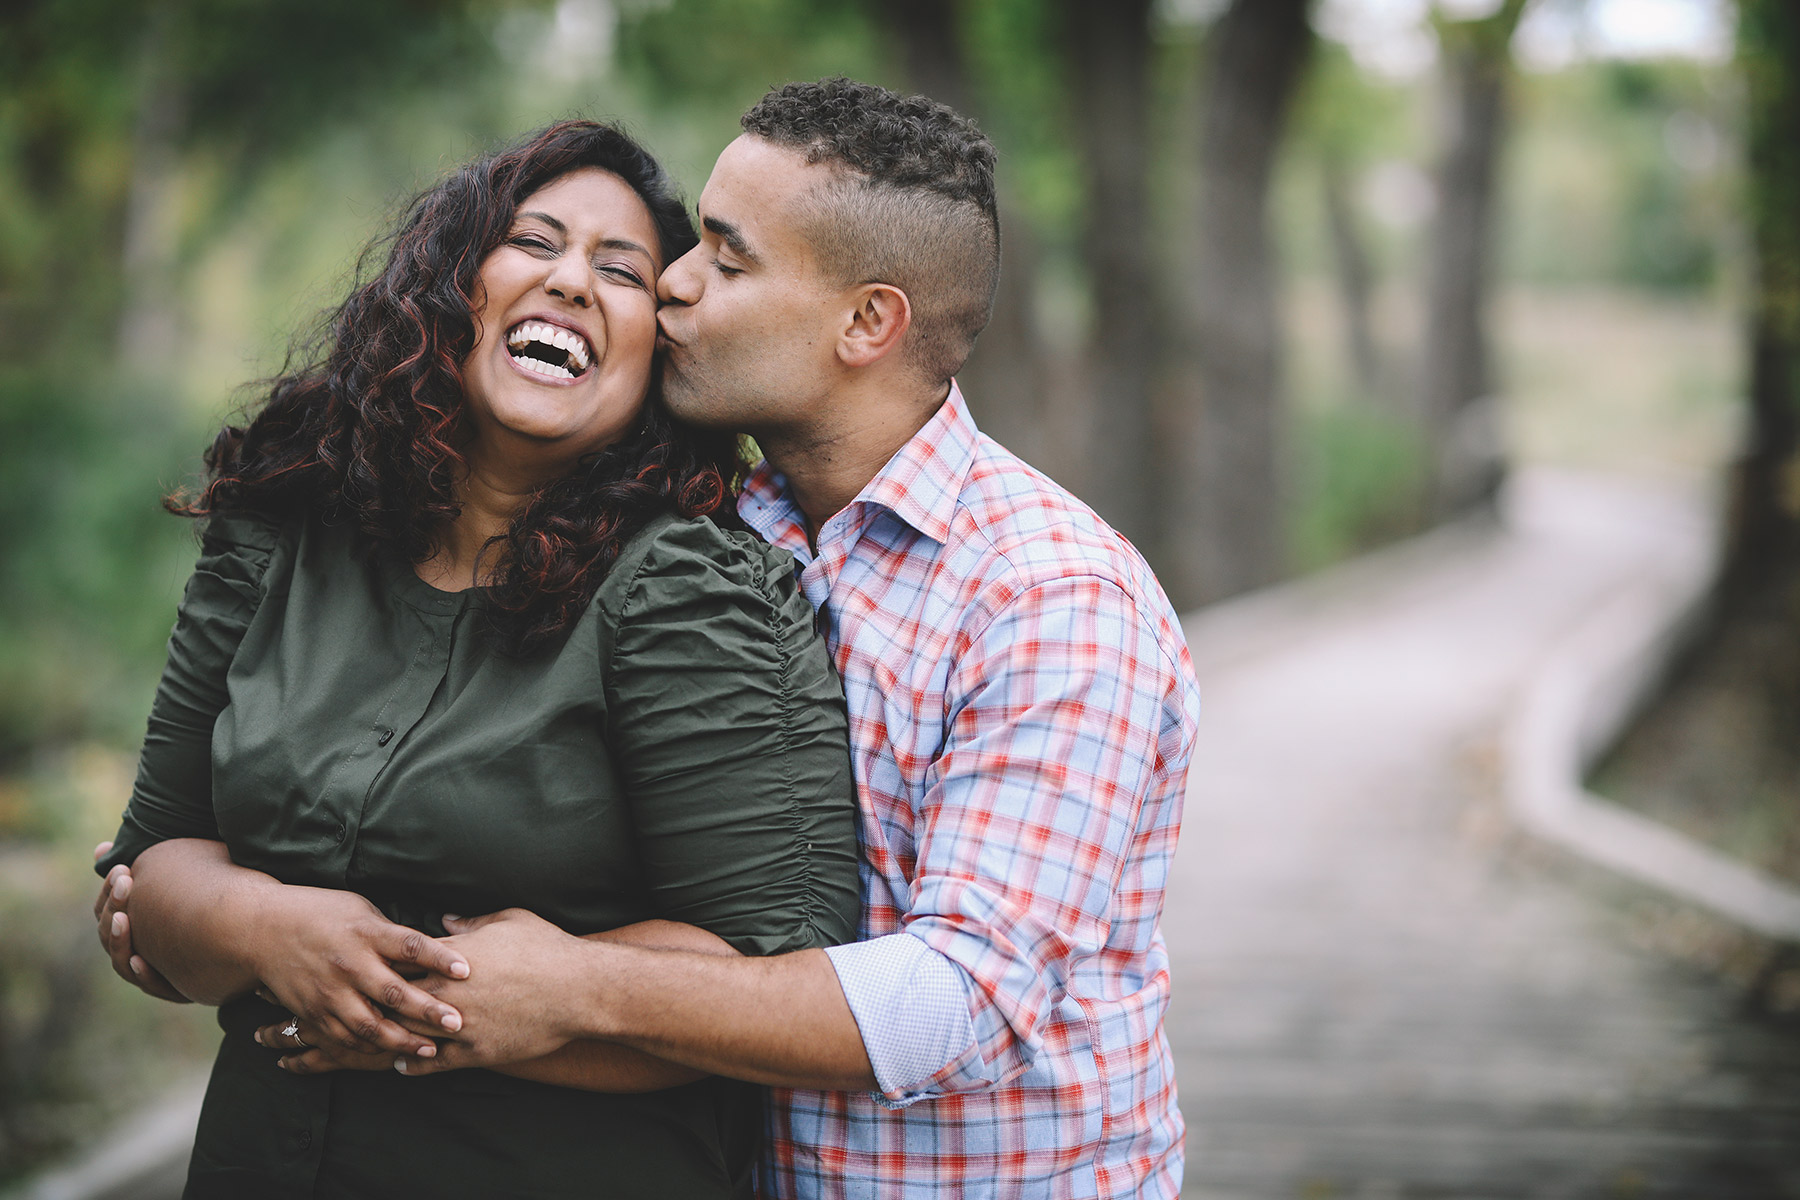 Vick-Photography-Engagement-Session-Laughing.jpg